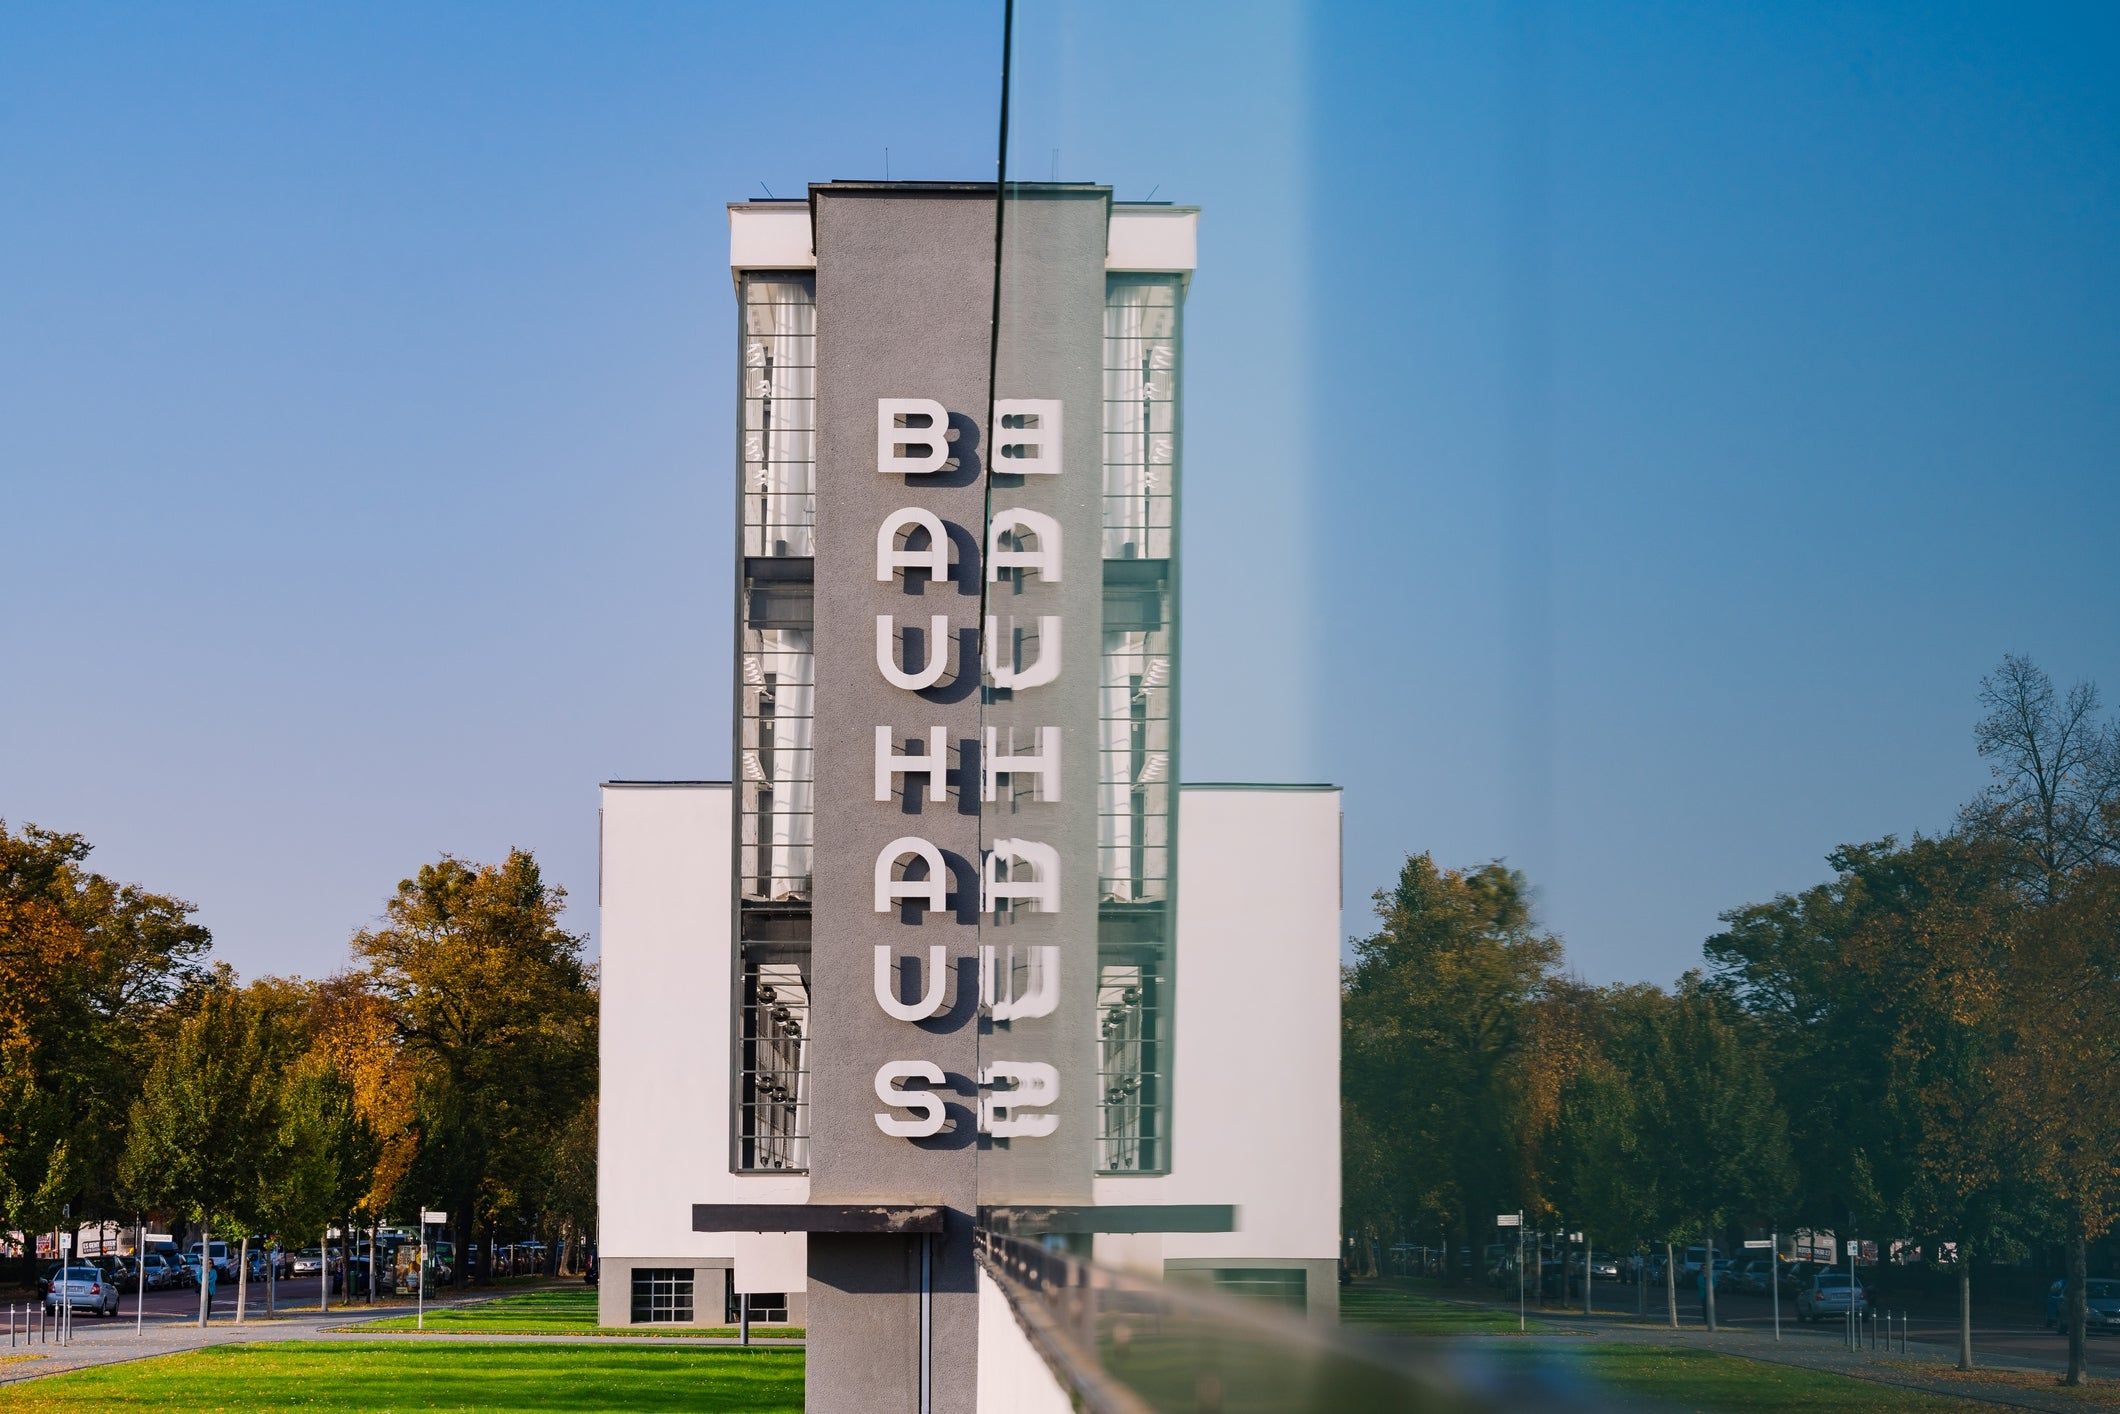 Dessau, Germany: A big birthday for Bauhaus